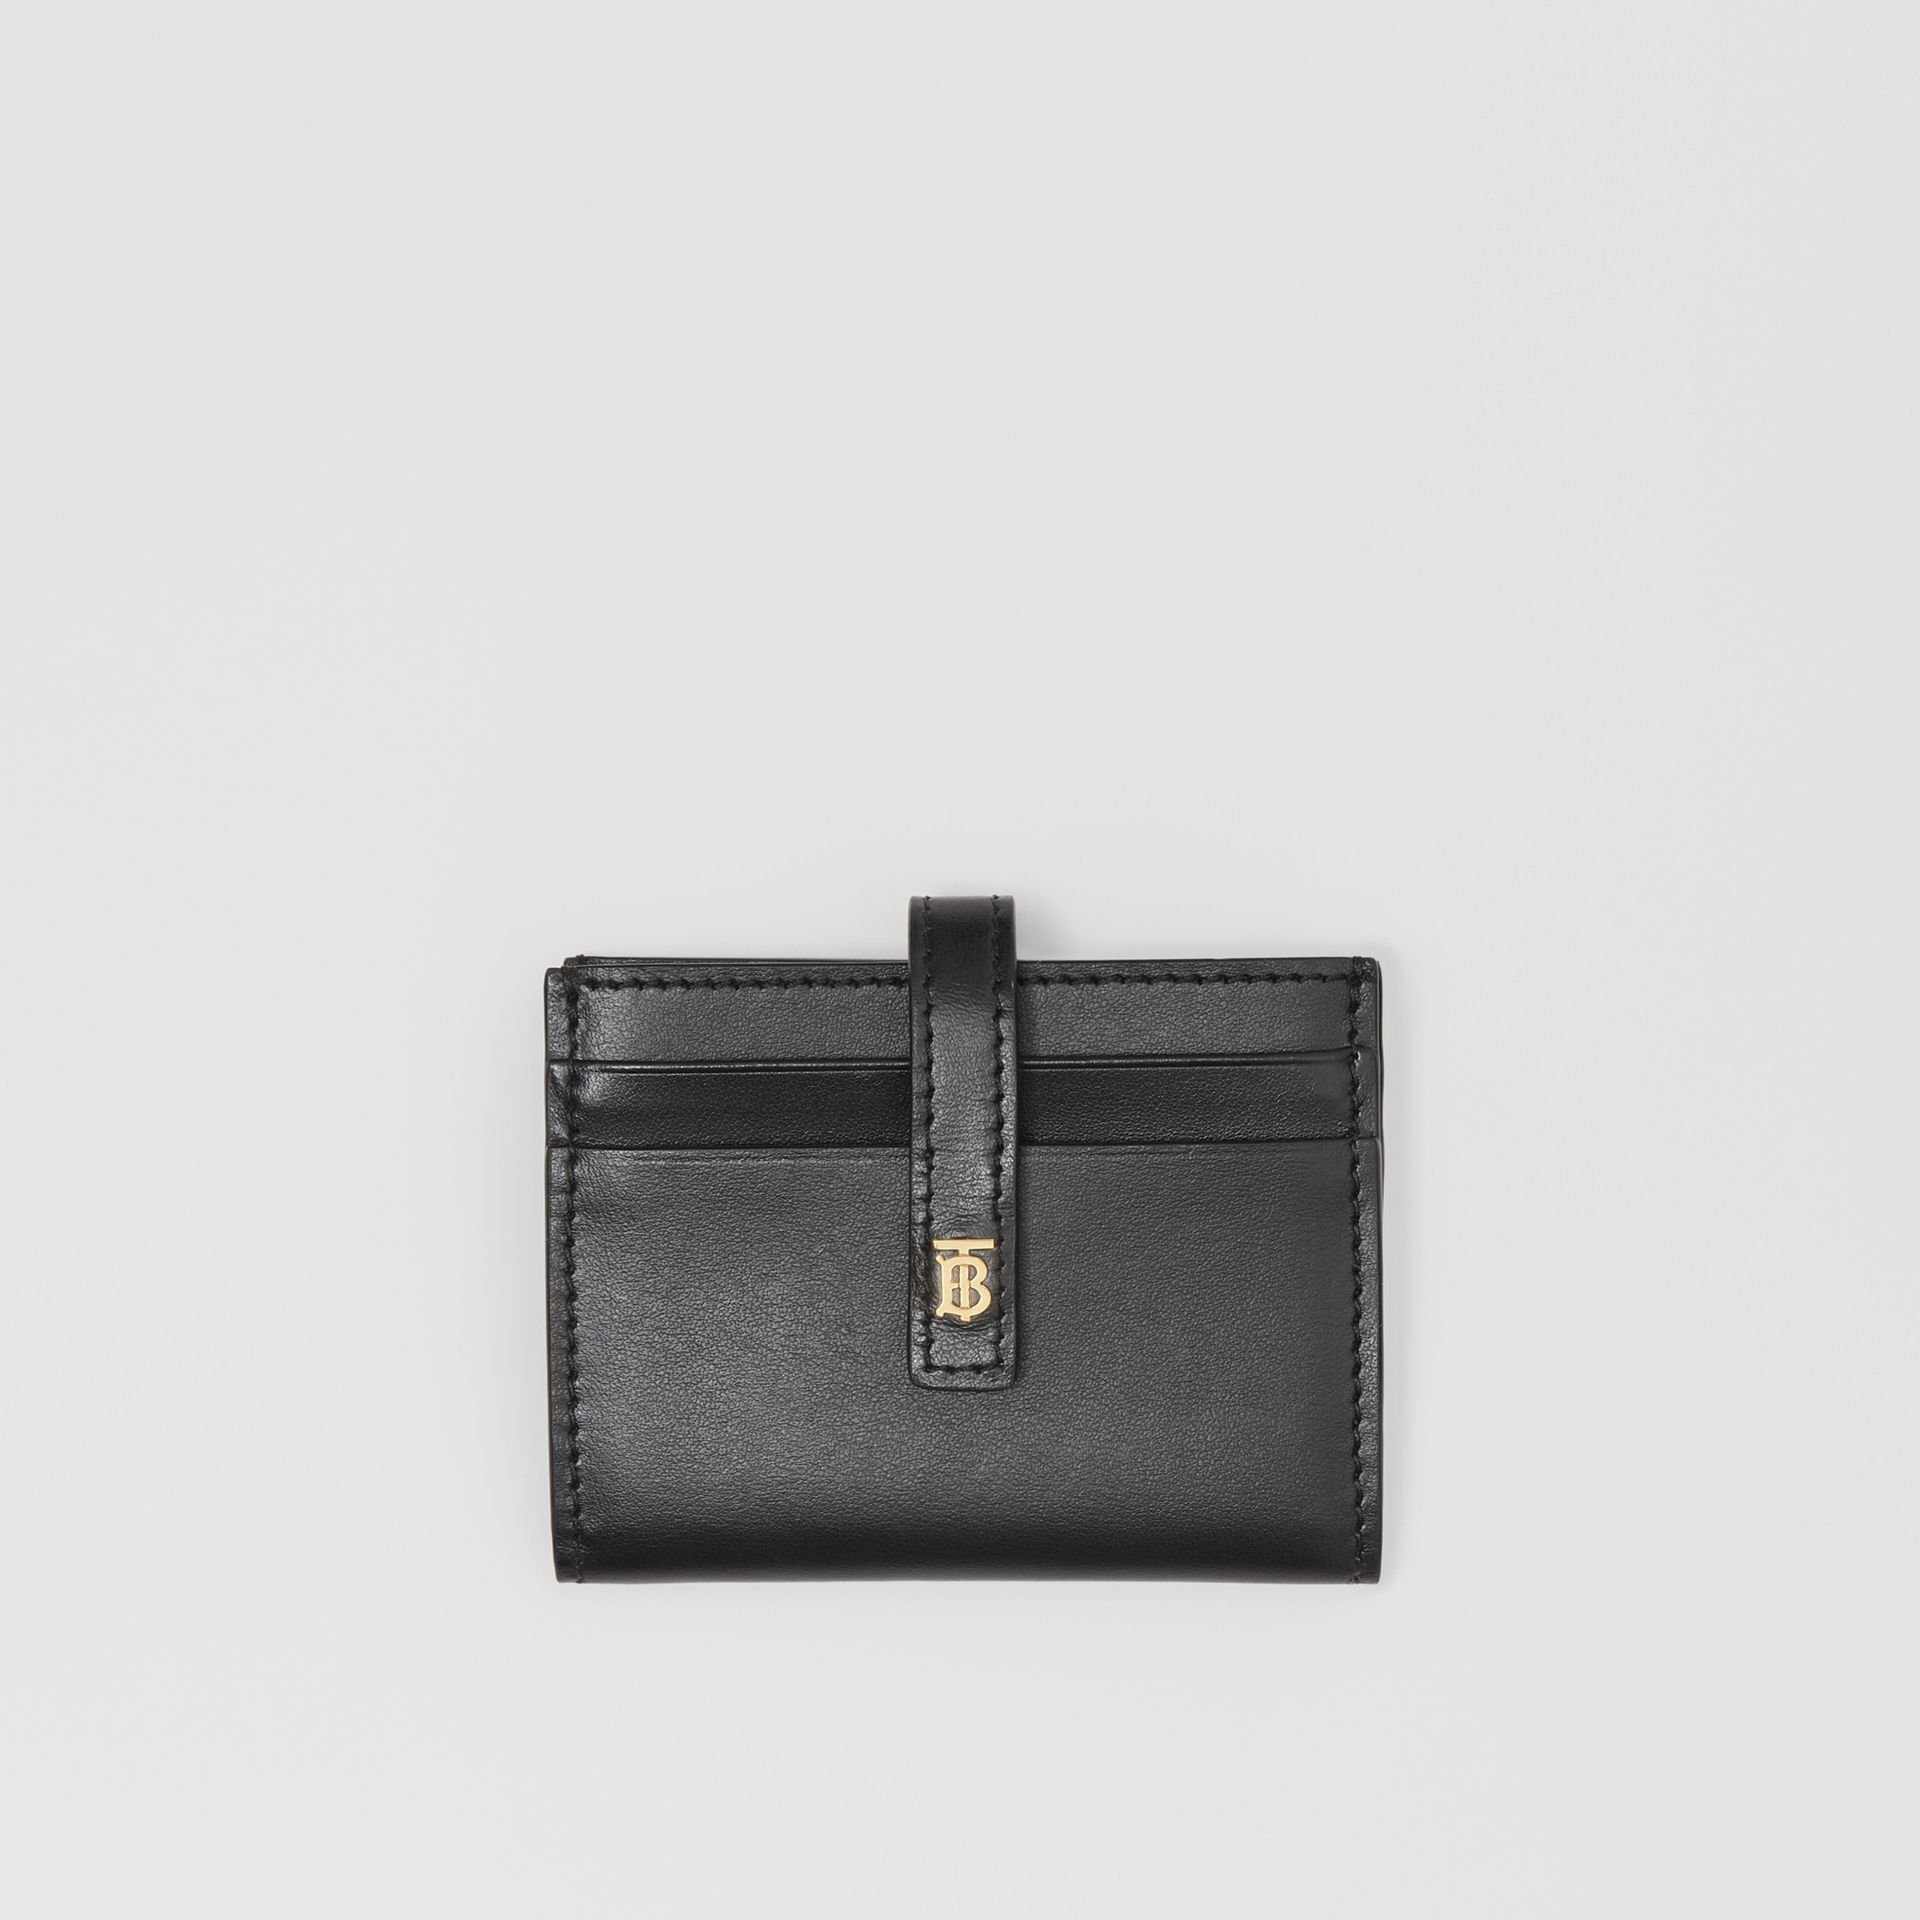 Monogram Motif Leather Folding Card Case in Black - Women | Burberry - gallery image 0